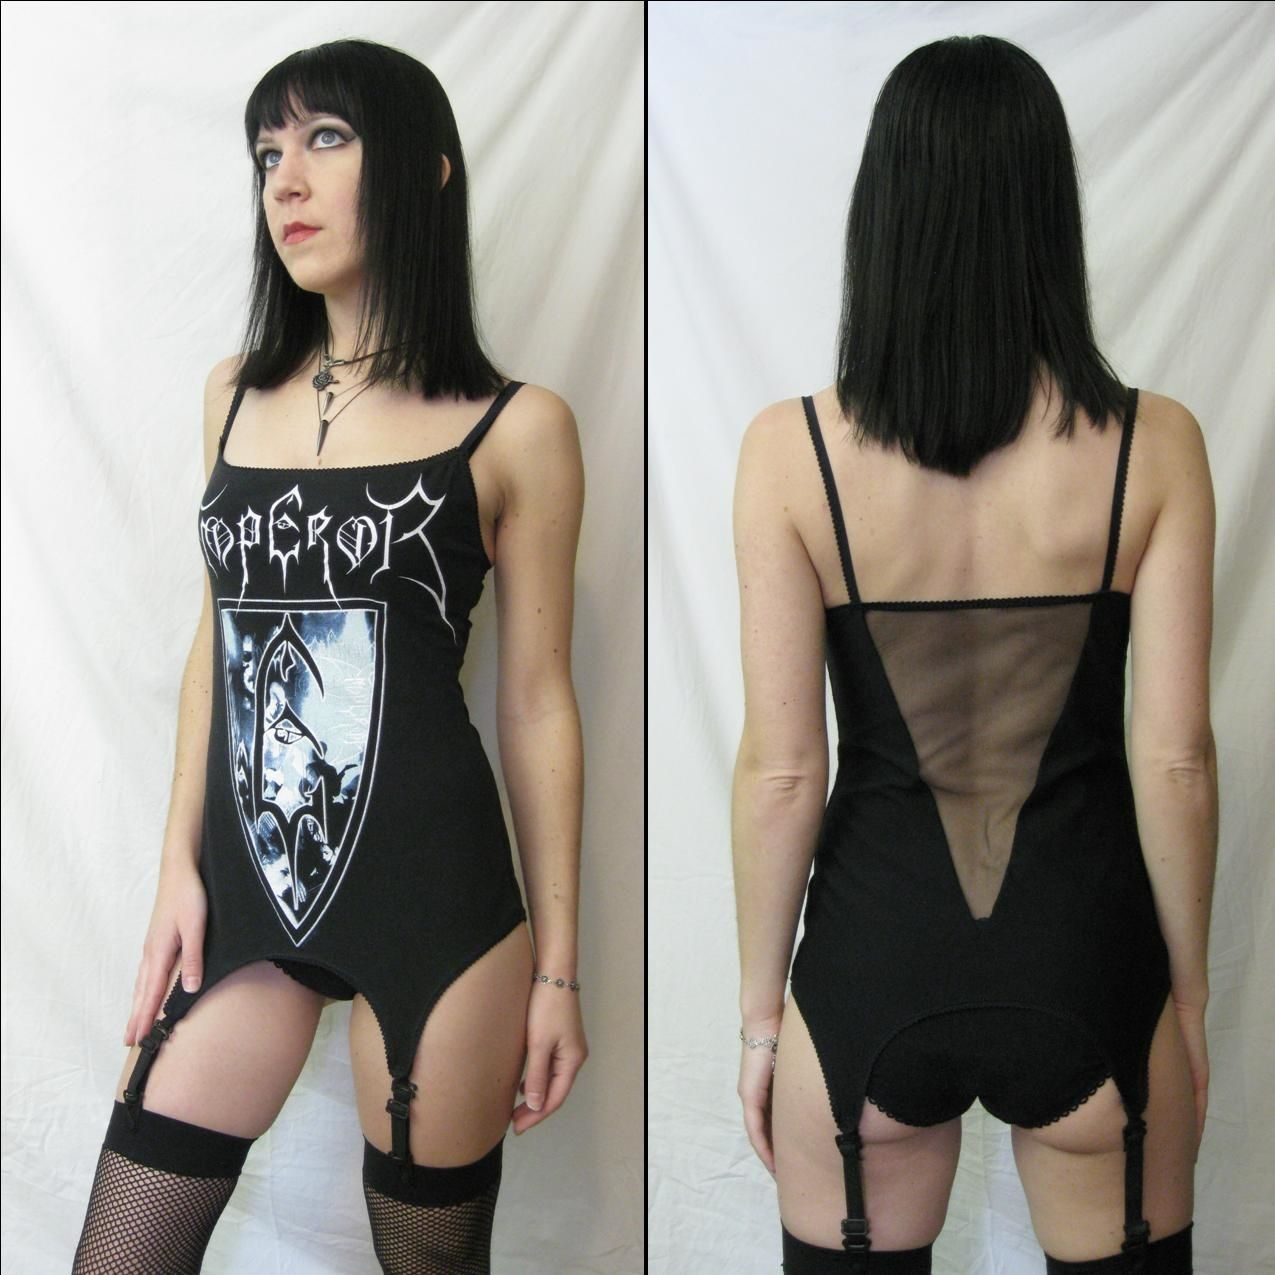 Black t shirt dress etsy - Emperor Garter Straps Tank Available At Www Kissofdoom Etsy Com Upcycled Women S Black